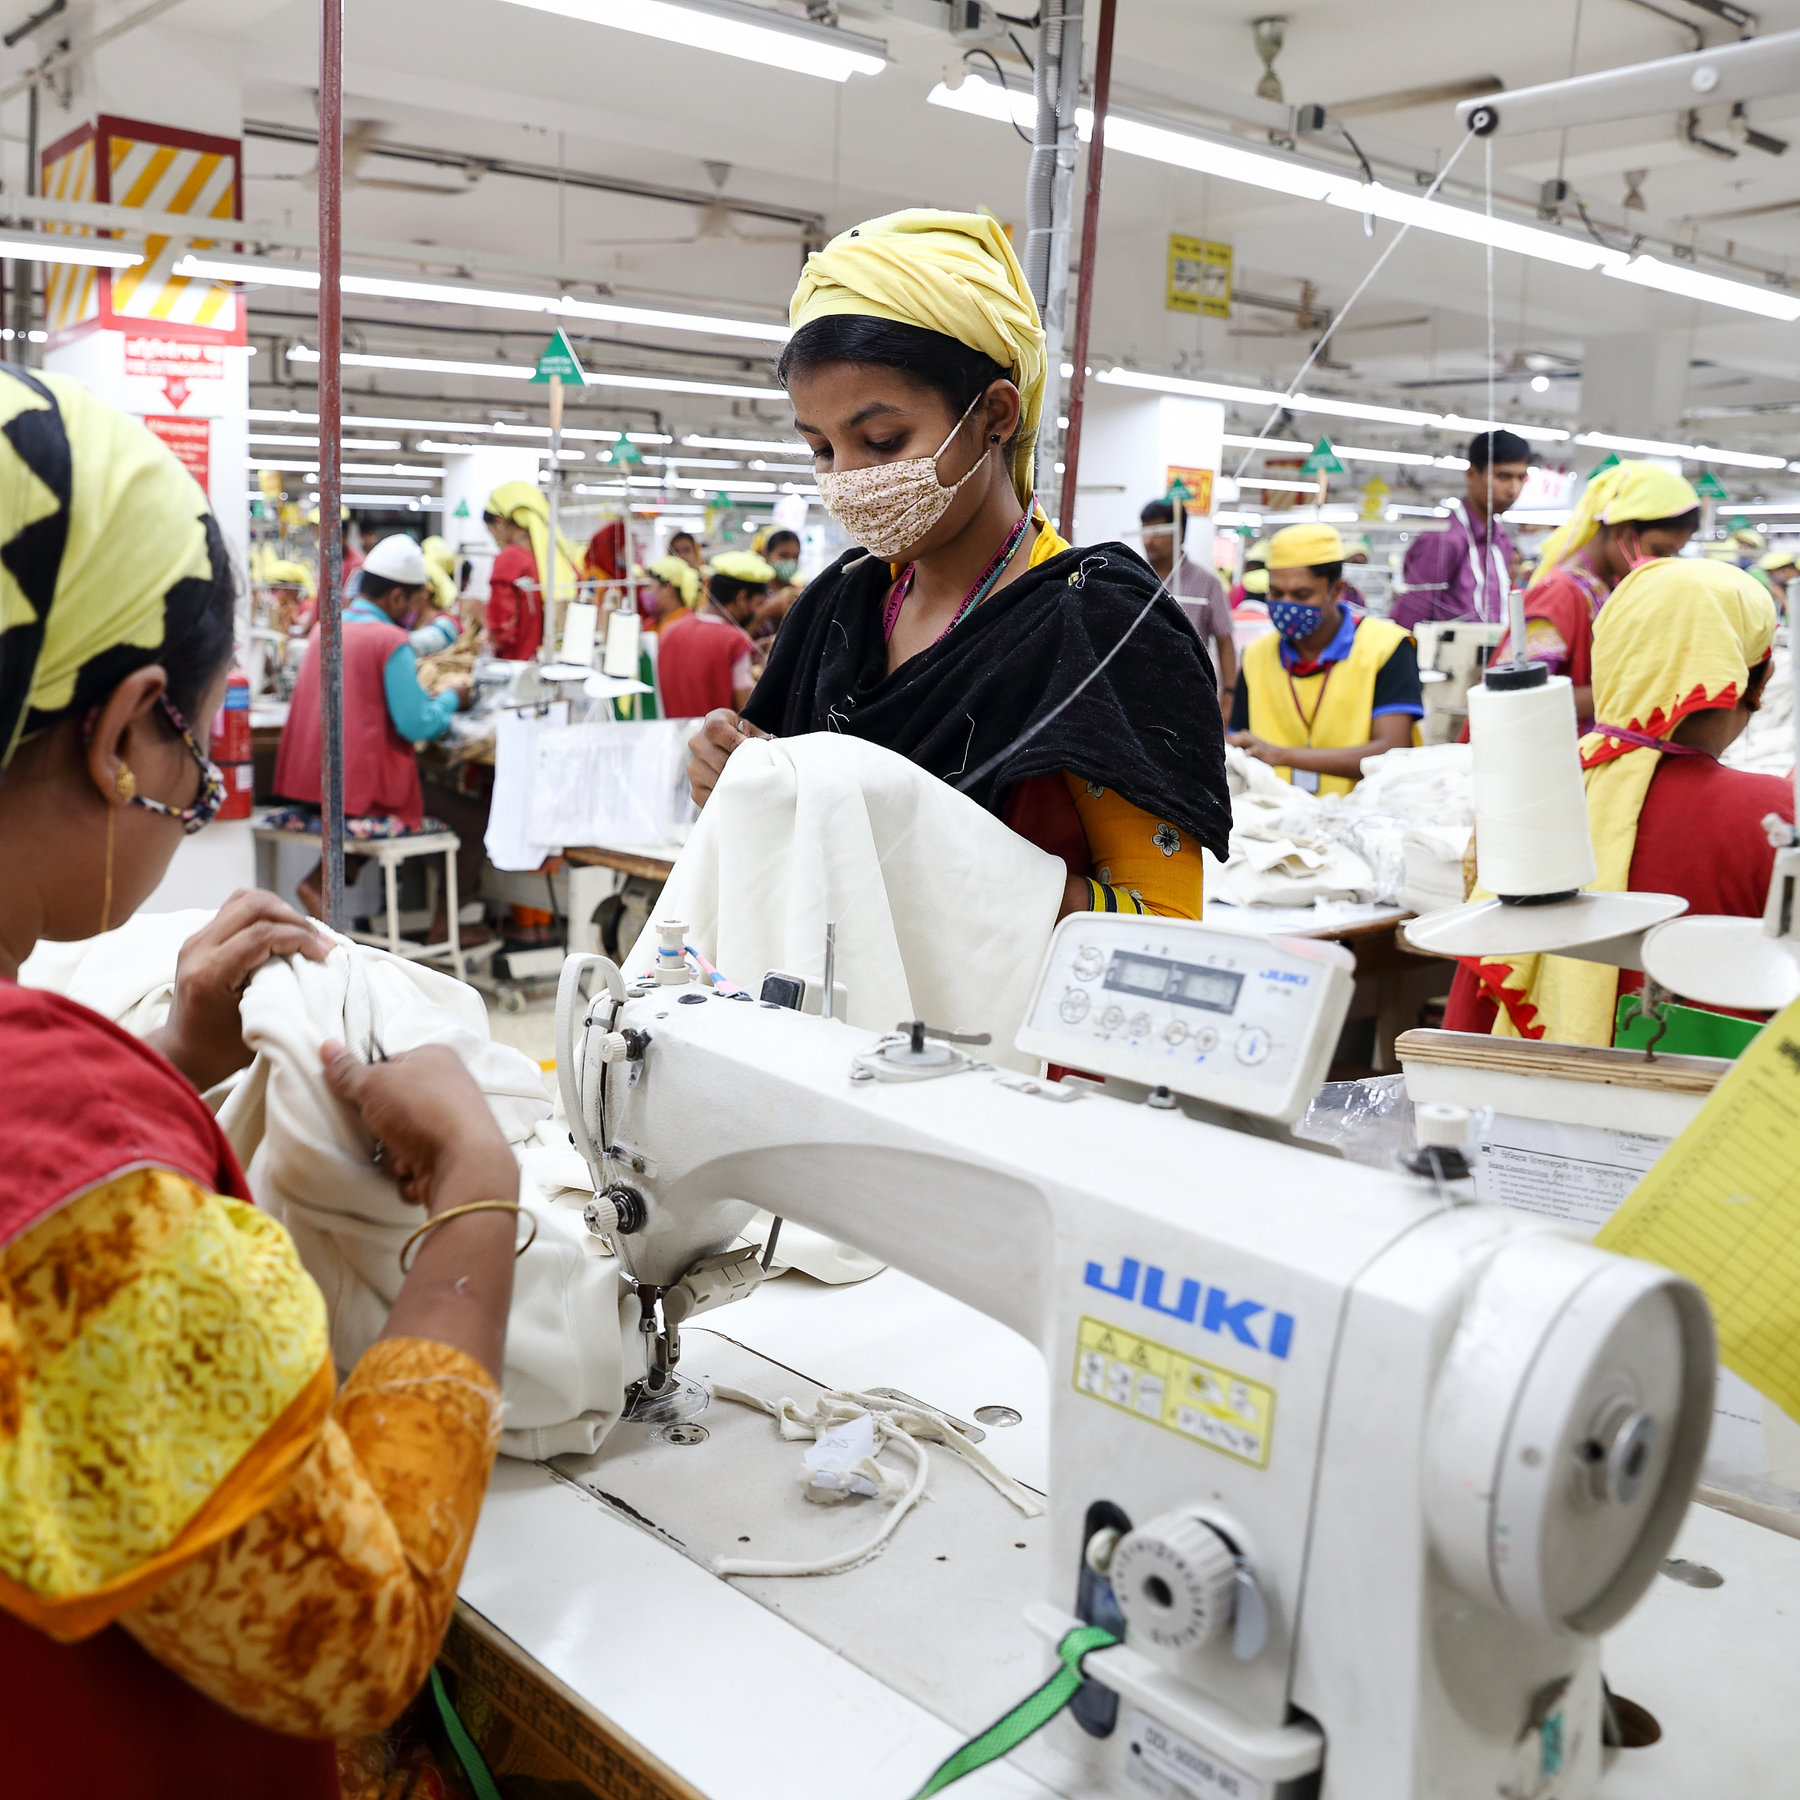 The catastrophic impact of COVID-19 on Asian garment industry